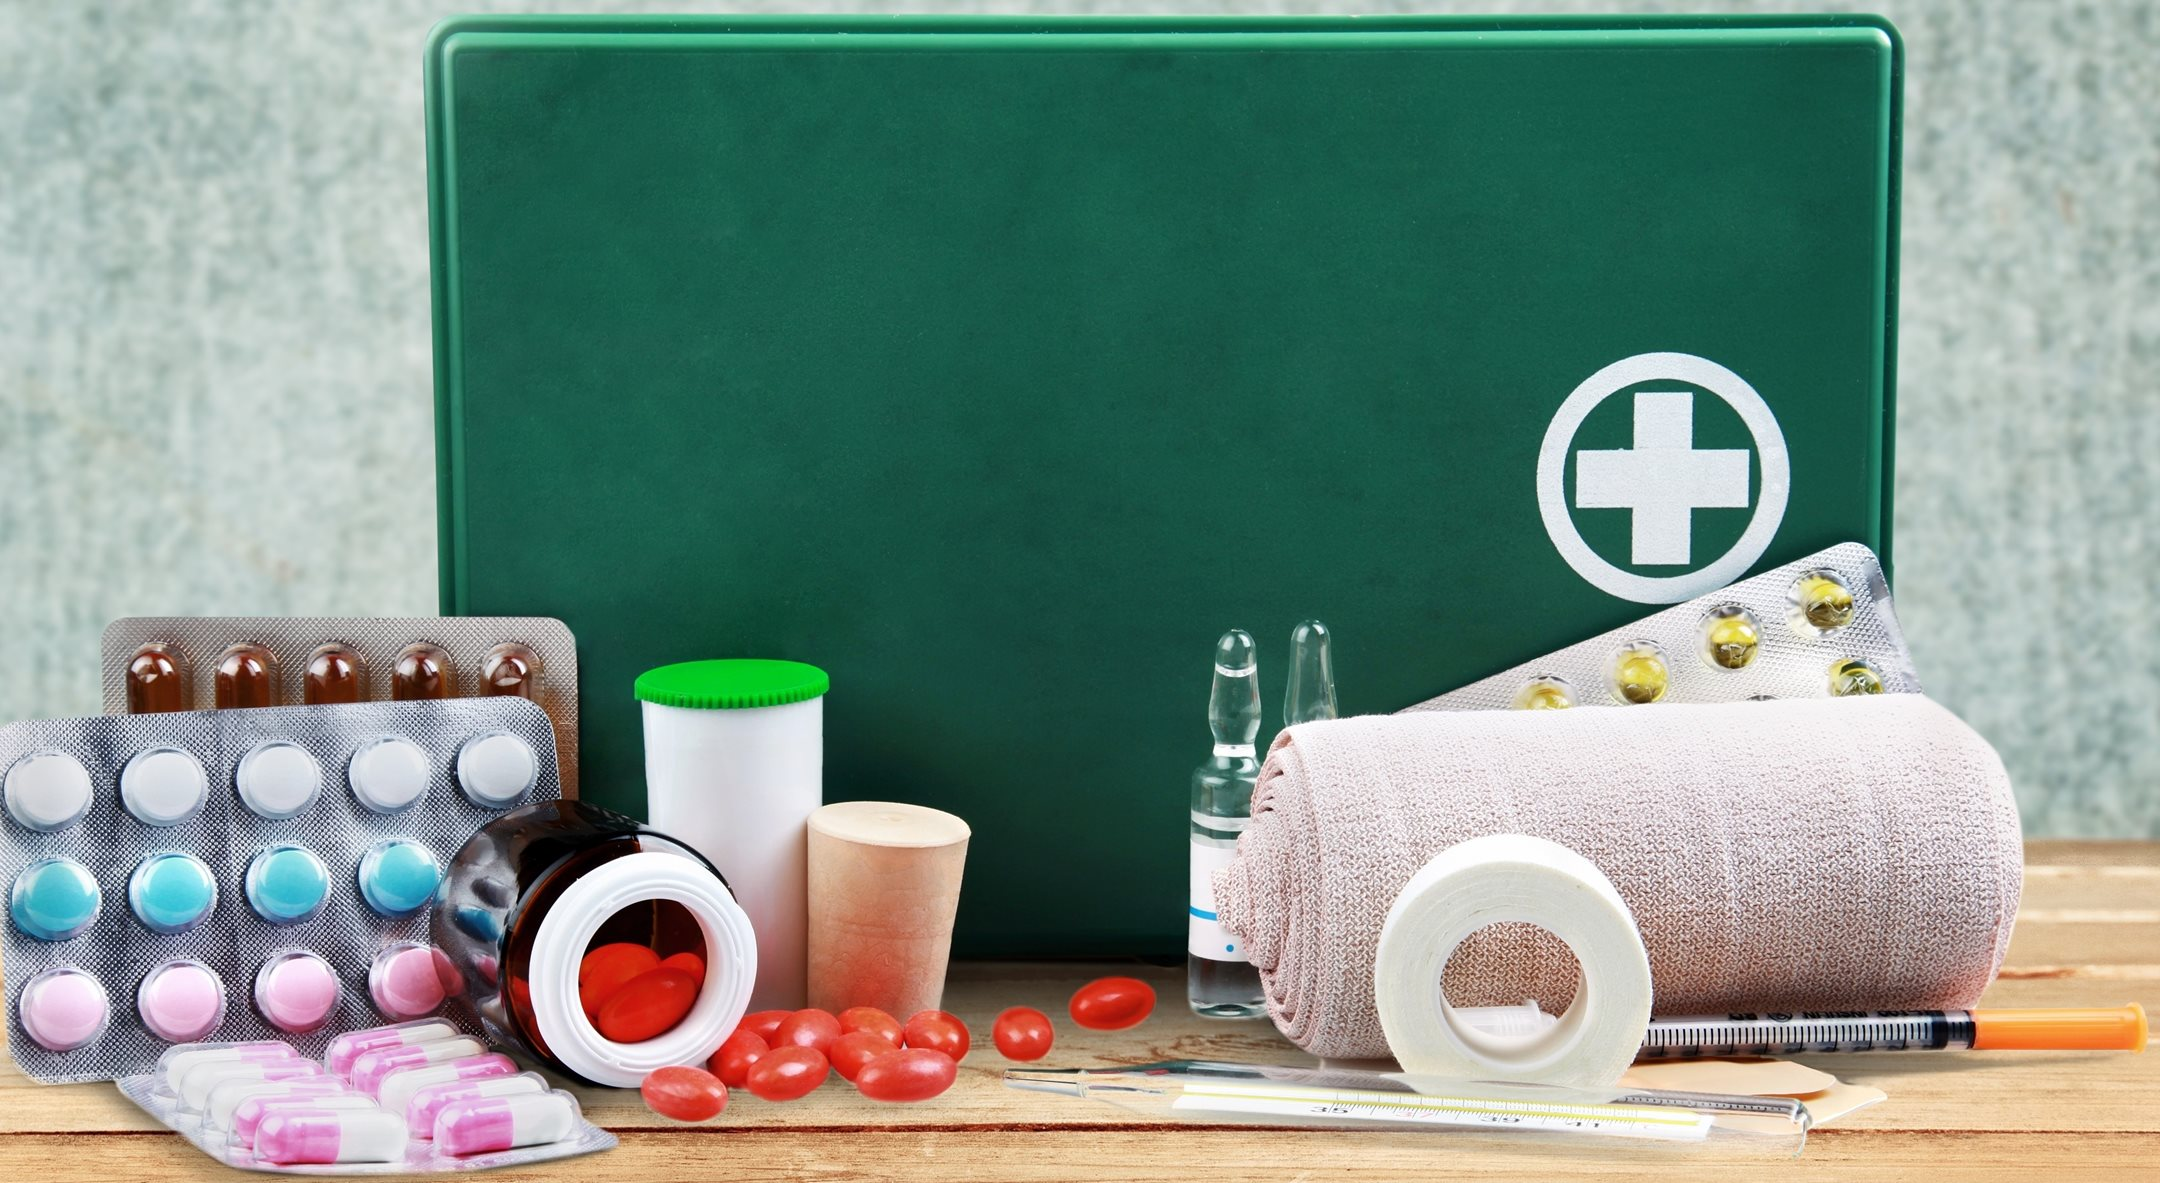 Assessing your emergency medical and chemical response needs